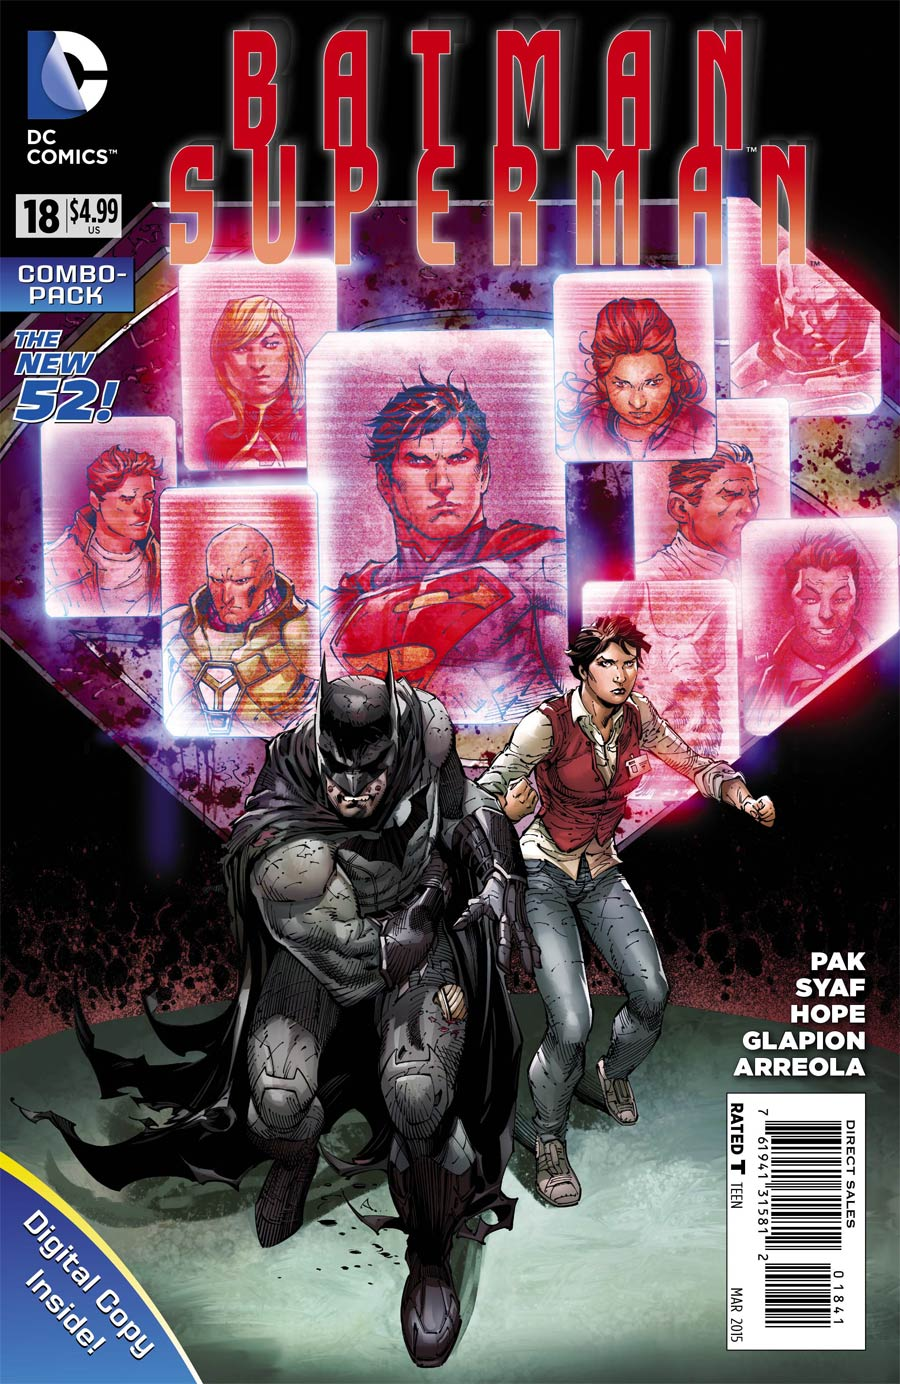 Batman Superman #18 Cover C Combo Pack With Polybag